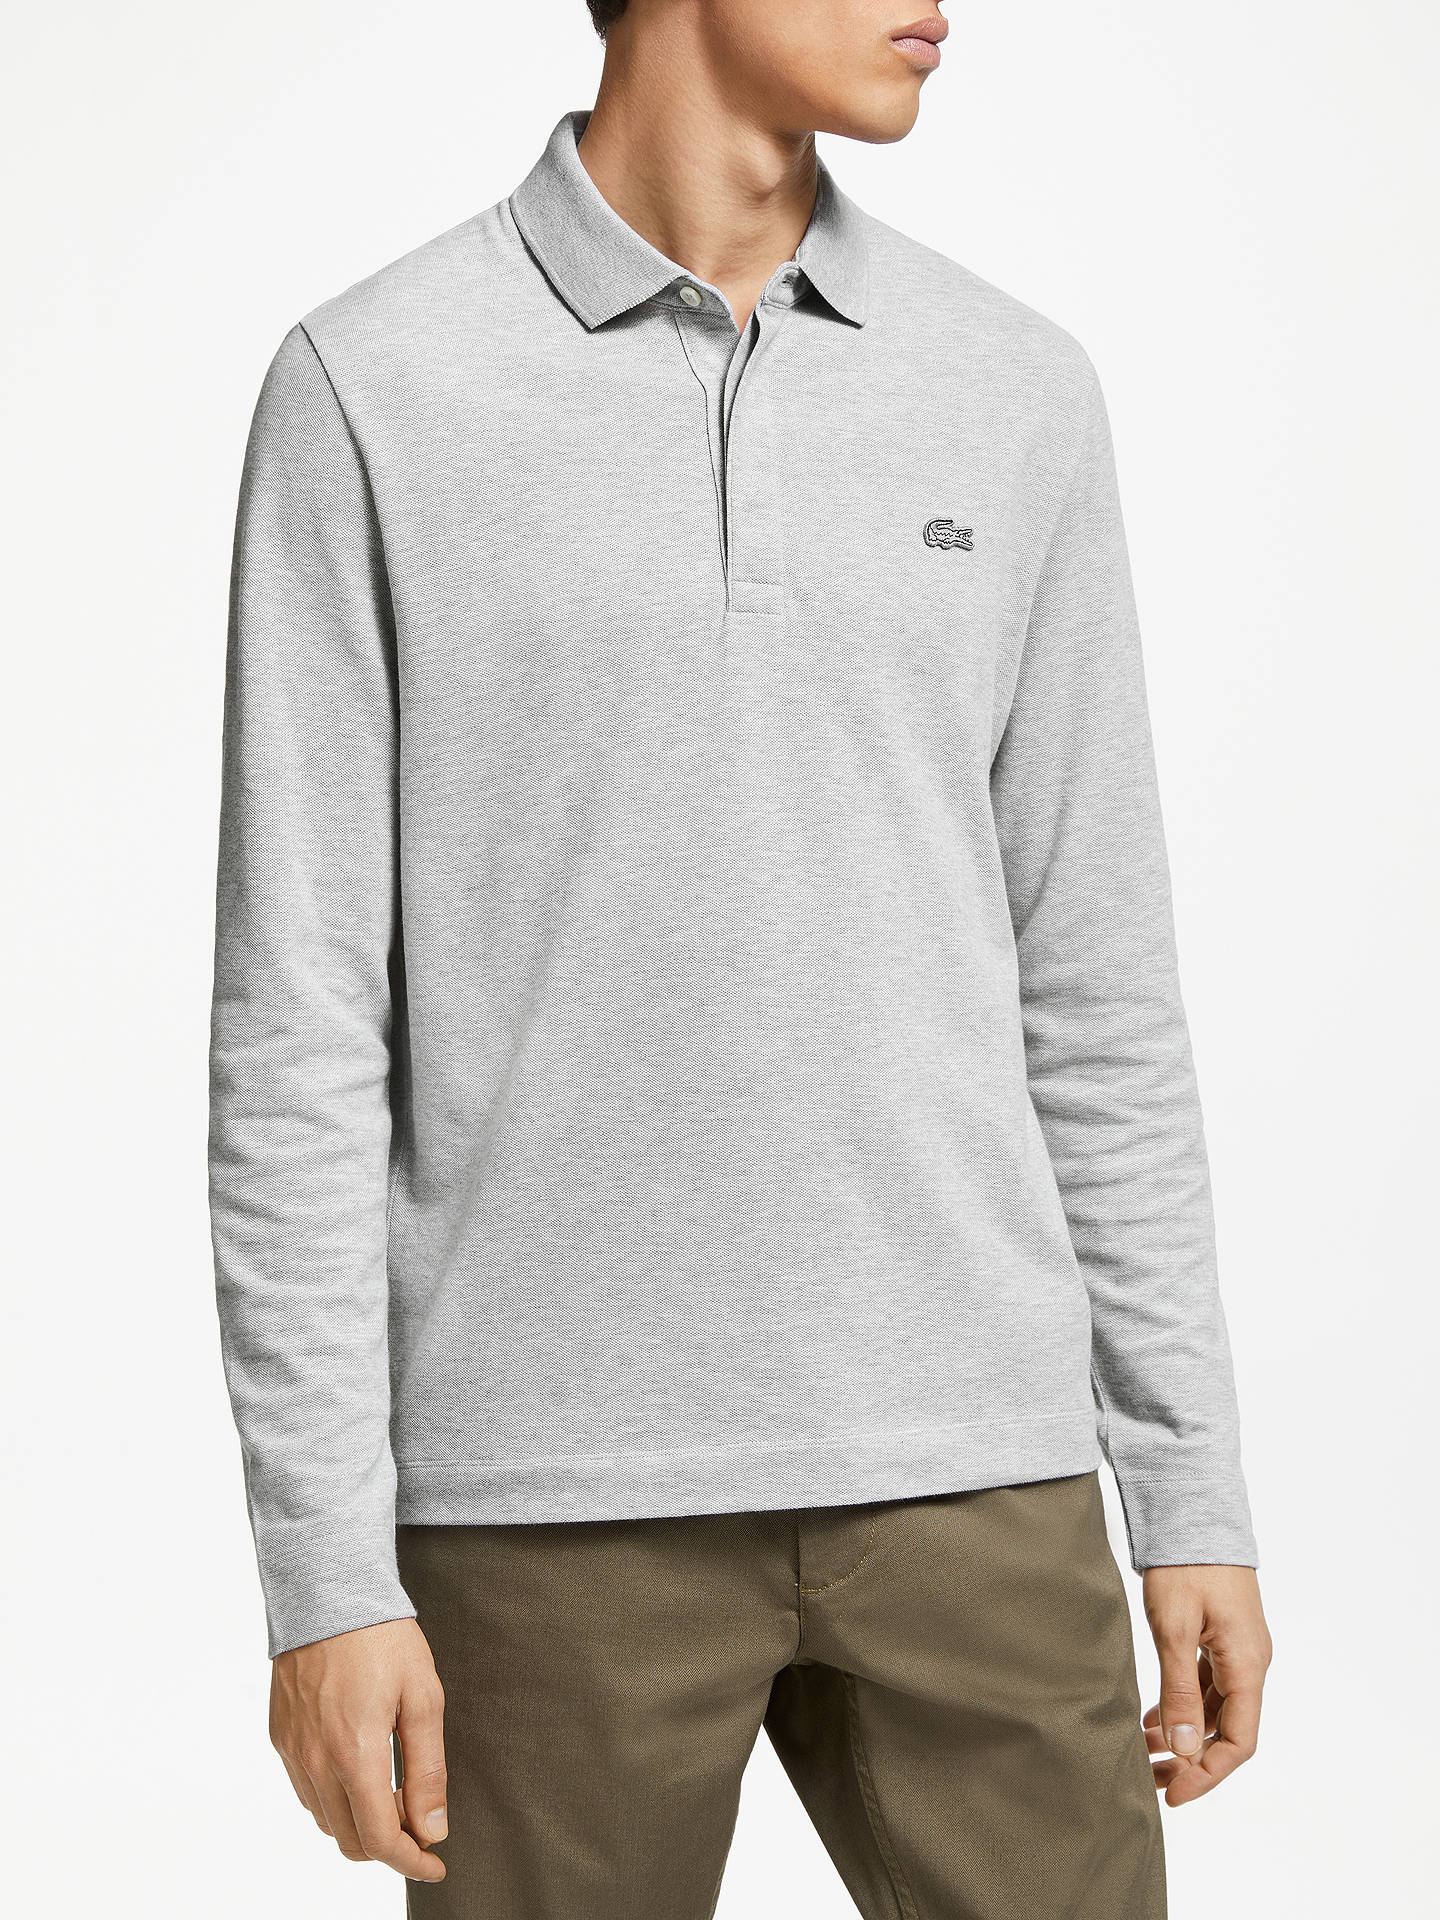 097021bf Lacoste Long Sleeve Paris Polo Shirt, Argent Chine at John Lewis ...